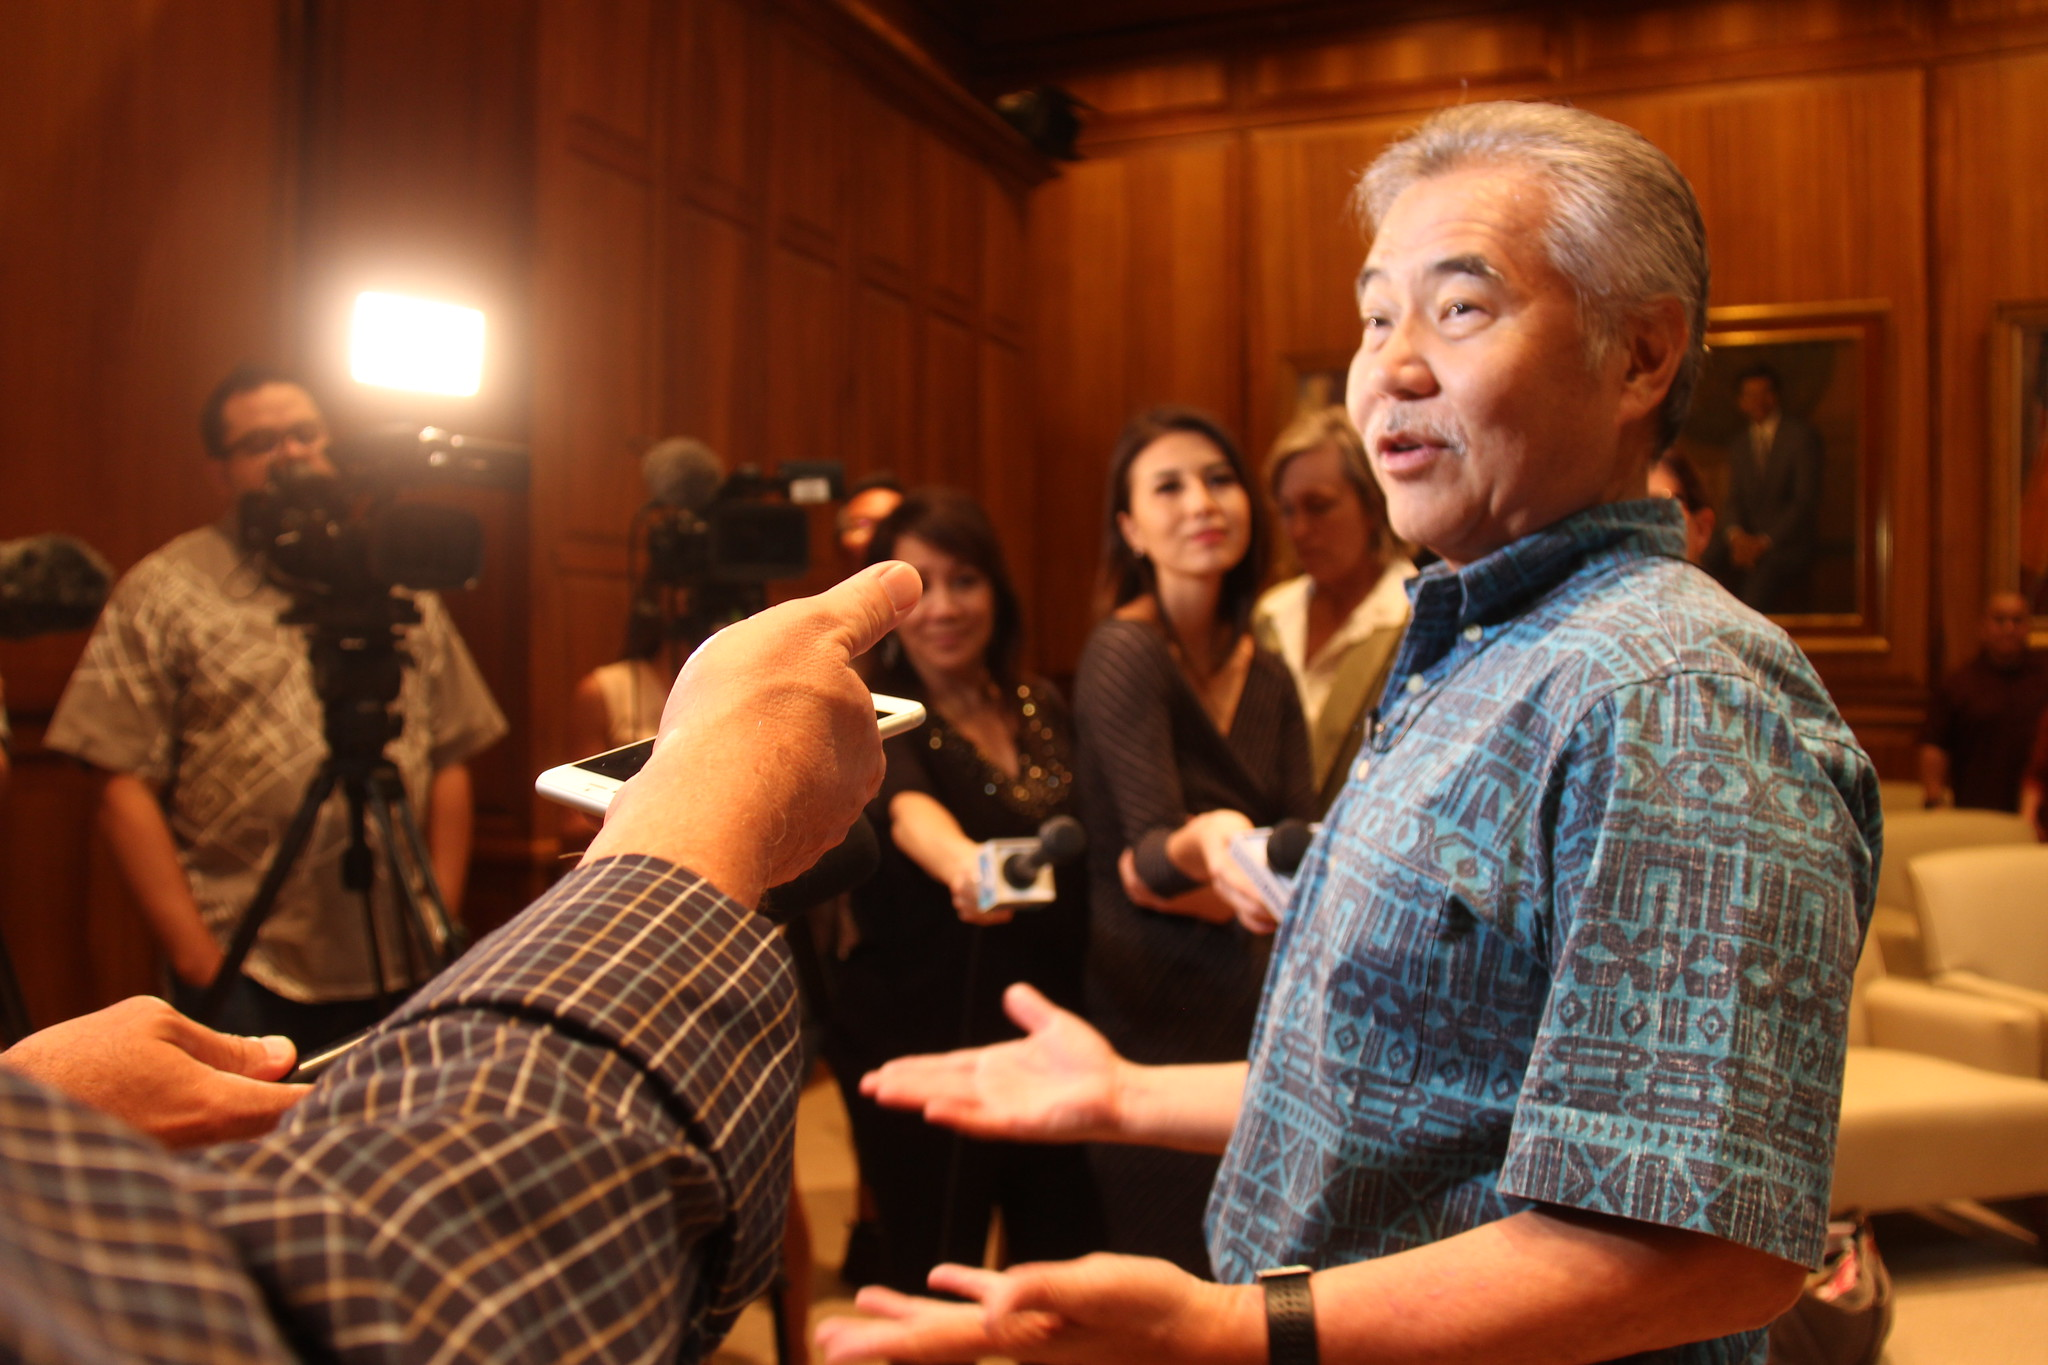 Ige Meets with Trump on Workforce Development